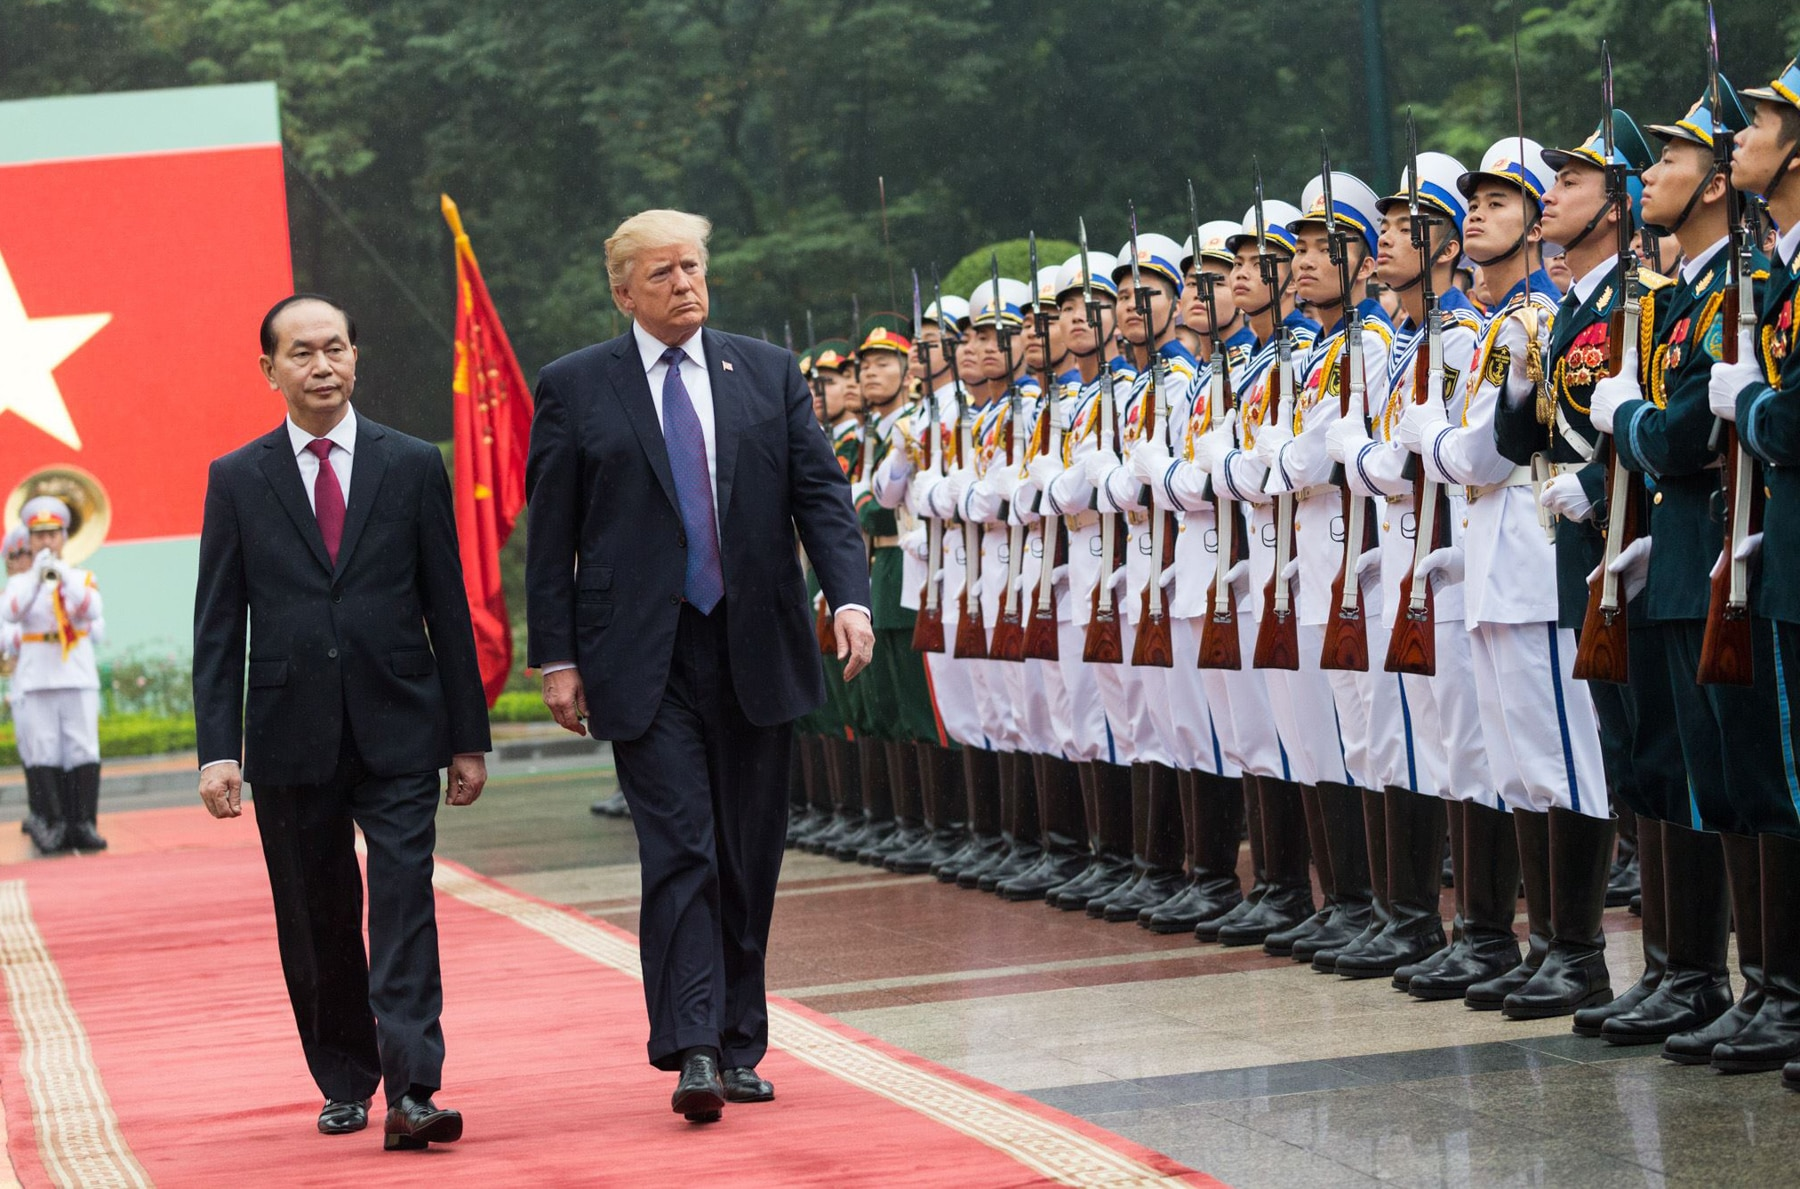 Presidents Trump and Vietnam President Tran Dai Quang attending welcoming ceremony (The White House)